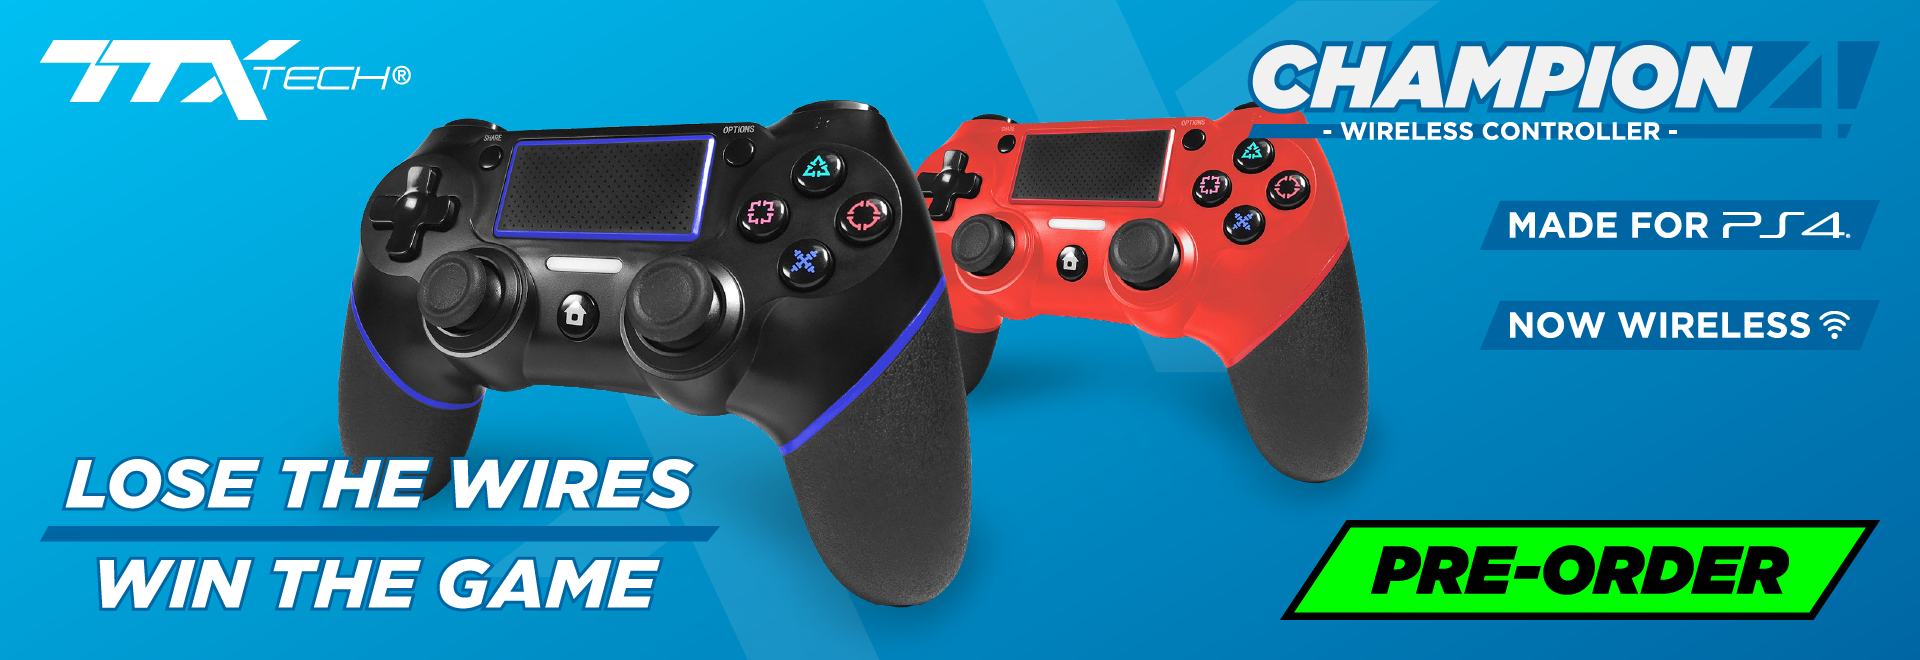 TTX Tech Wireless Champion Controller for PS4